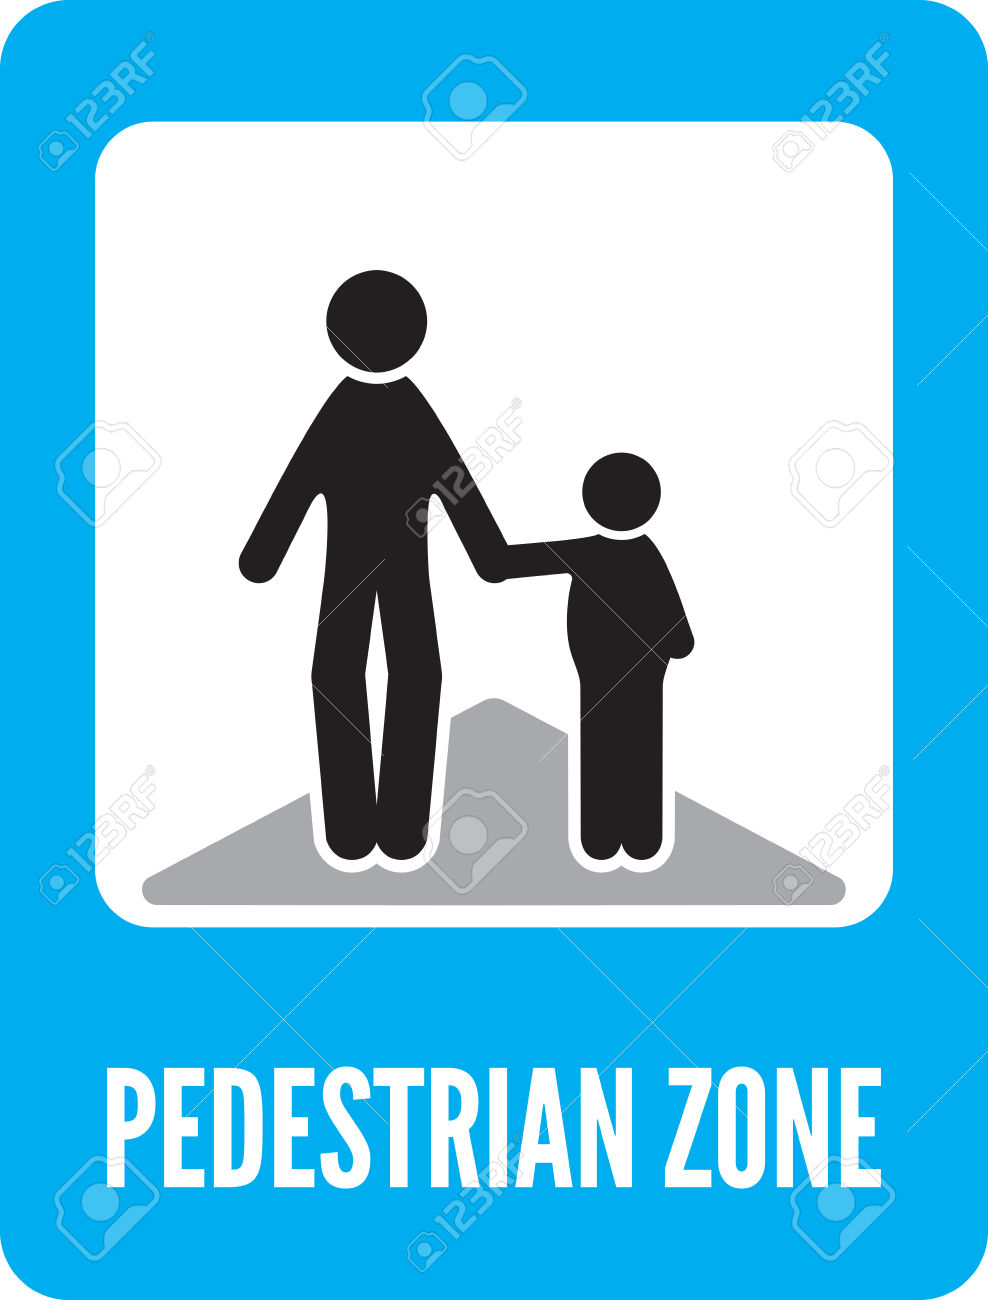 Pedestrian Zone Symbol Royalty Free Cliparts, Vectors, And Stock.